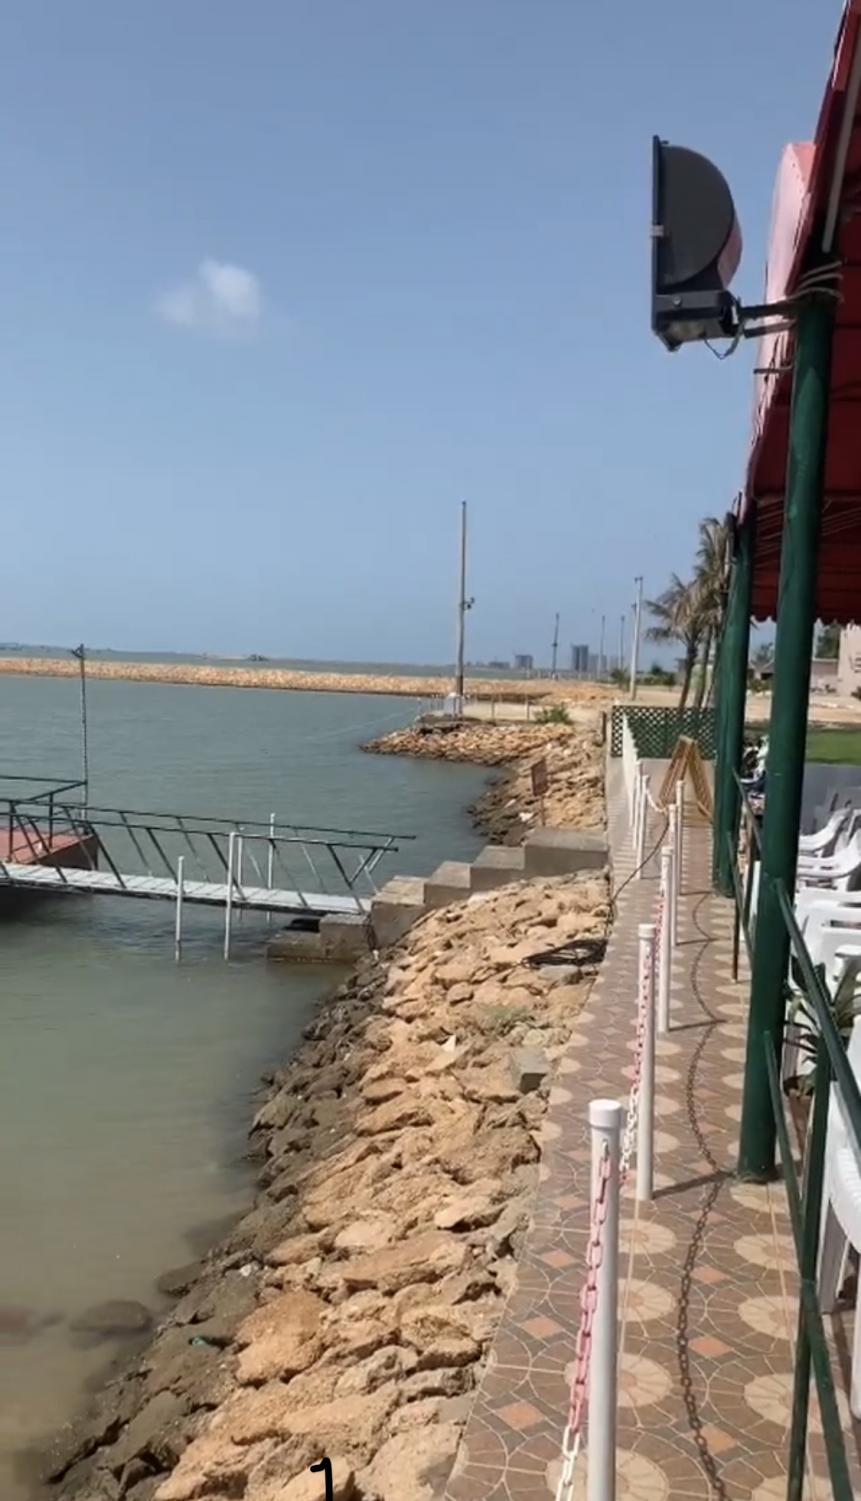 The Korangi Creek is located in the Sindh Province of Karachi.